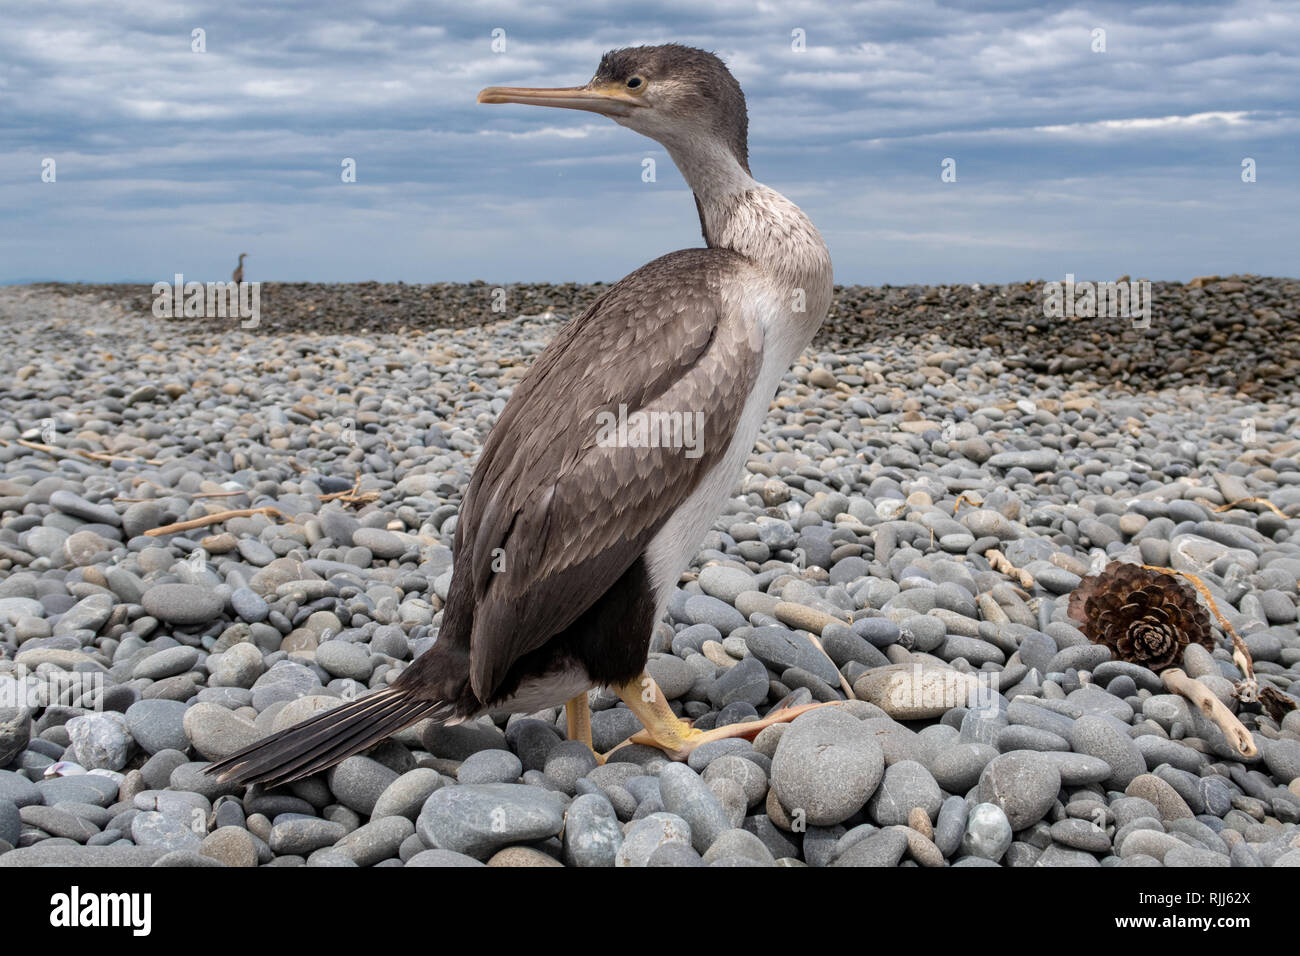 A juvenile spotted shag watches its surroundings as it rests on a beach in Canterbury, New Zealand - Stock Image